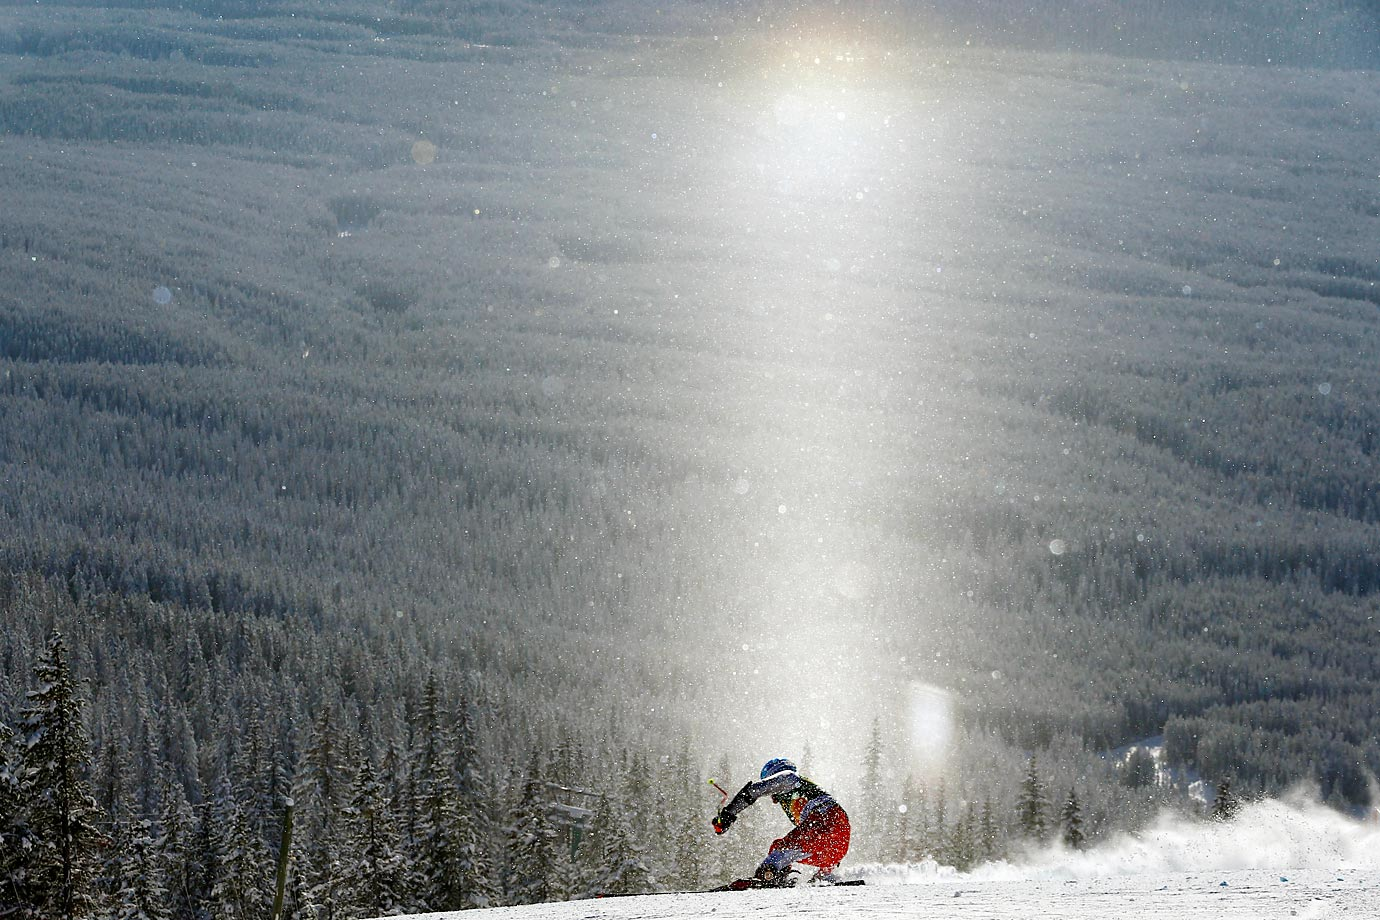 Maciej Bydlinski of Poland competes during the Audi FIS Alpine Ski World Cup Men's Super-G in Lake Louise, Canada.